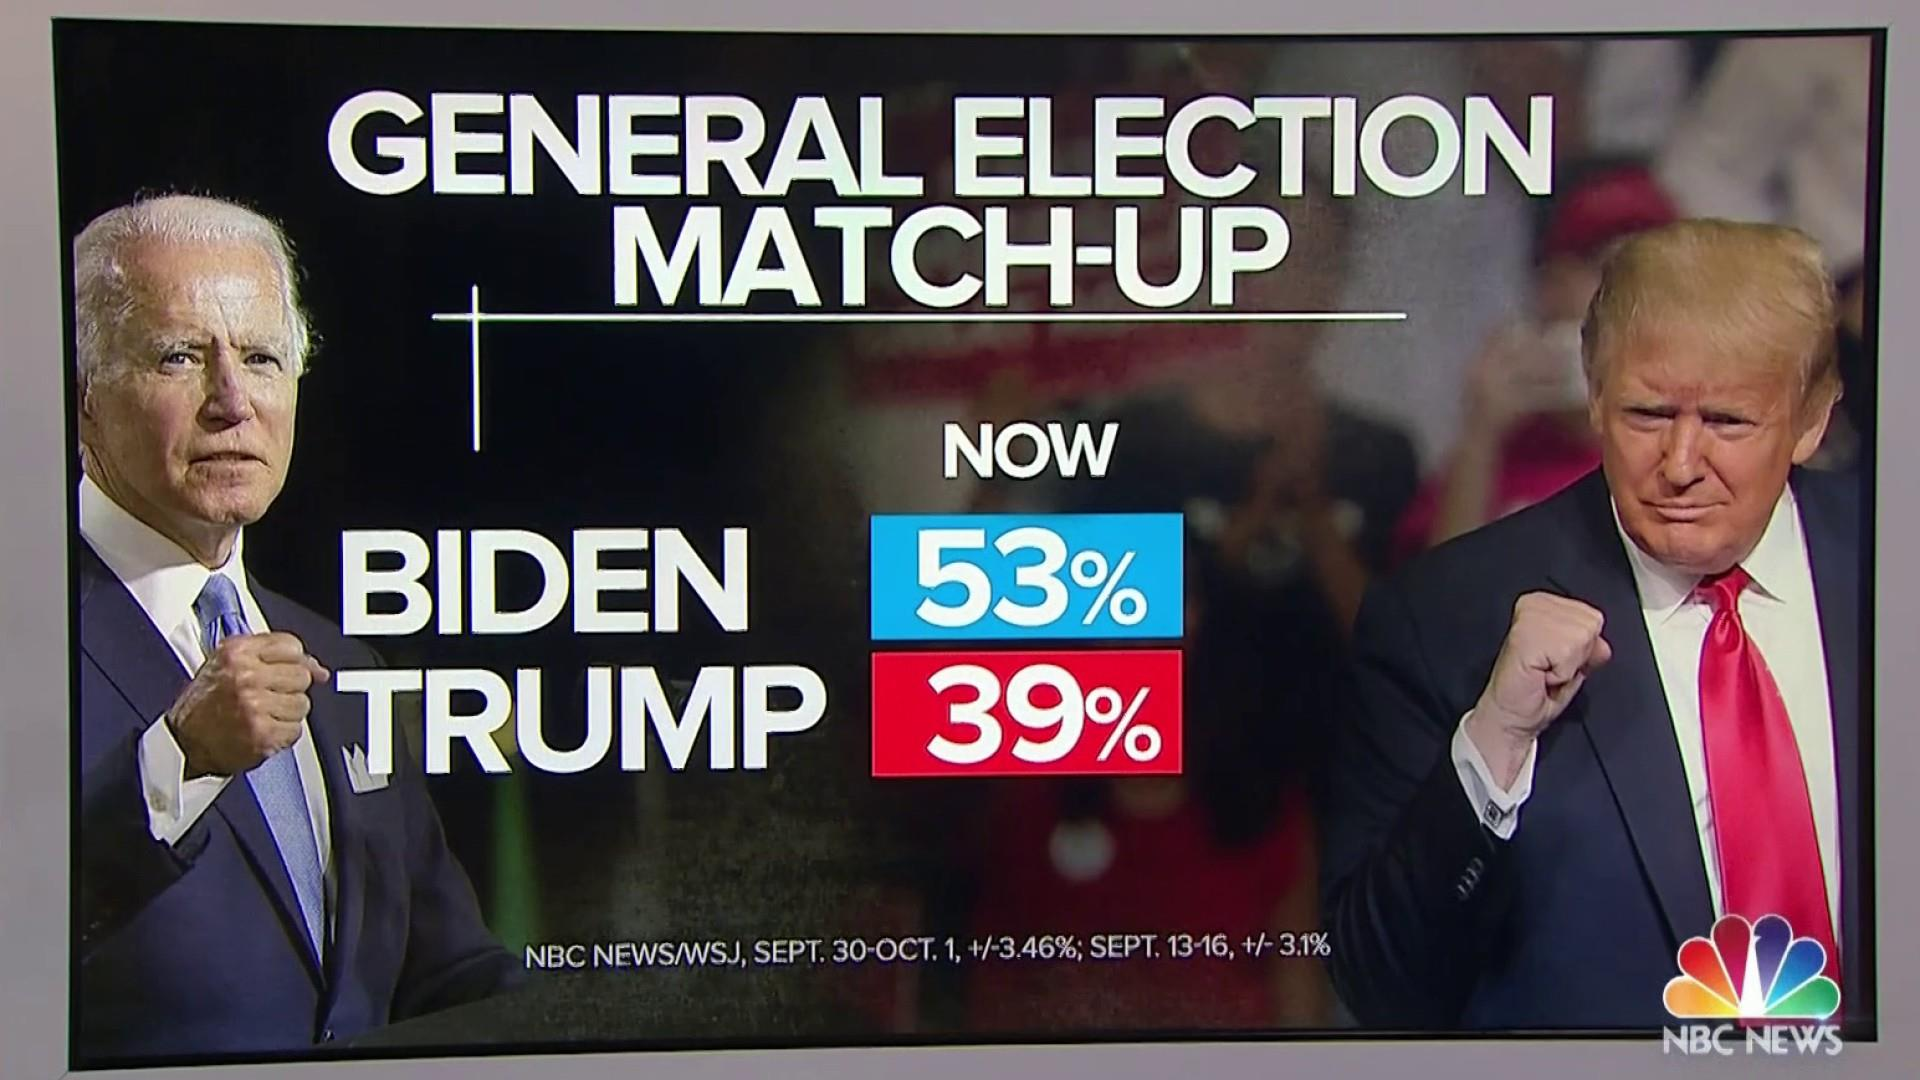 Bidens national lead over Trump jumps to 14 points after debate in NBC  NewsWSJ poll